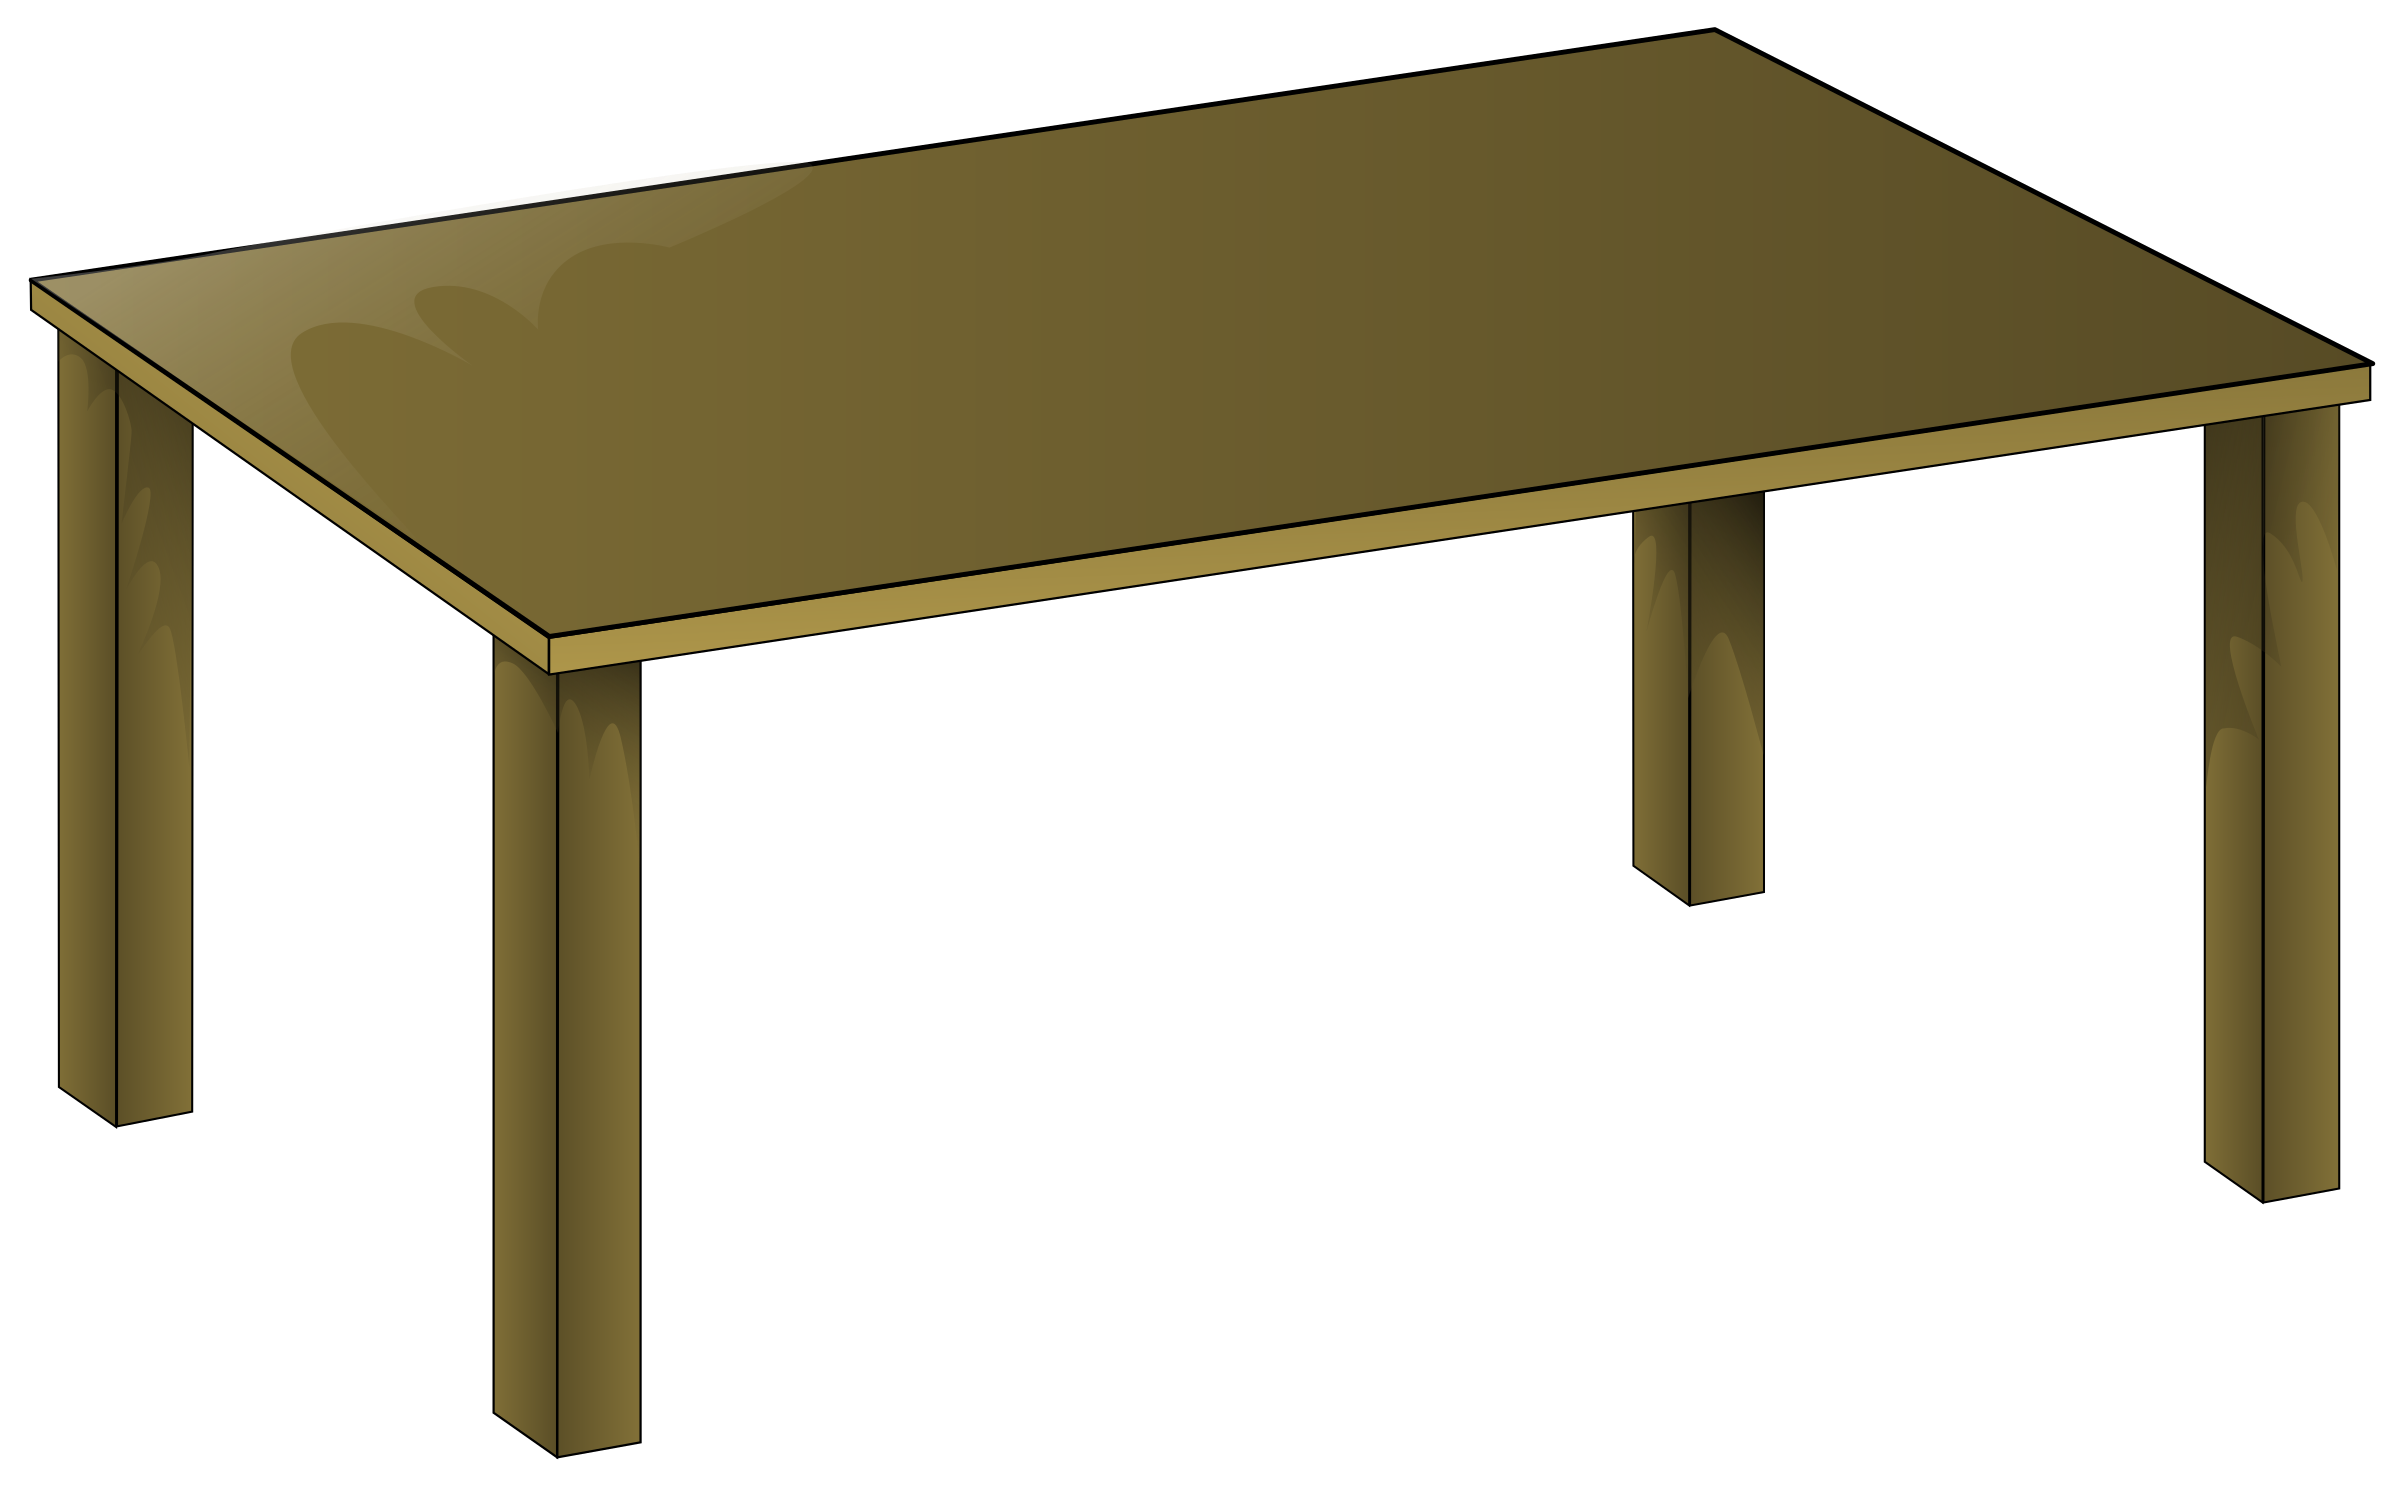 Furniture clipart wooden table Table Wooden Wooden Clipart Table